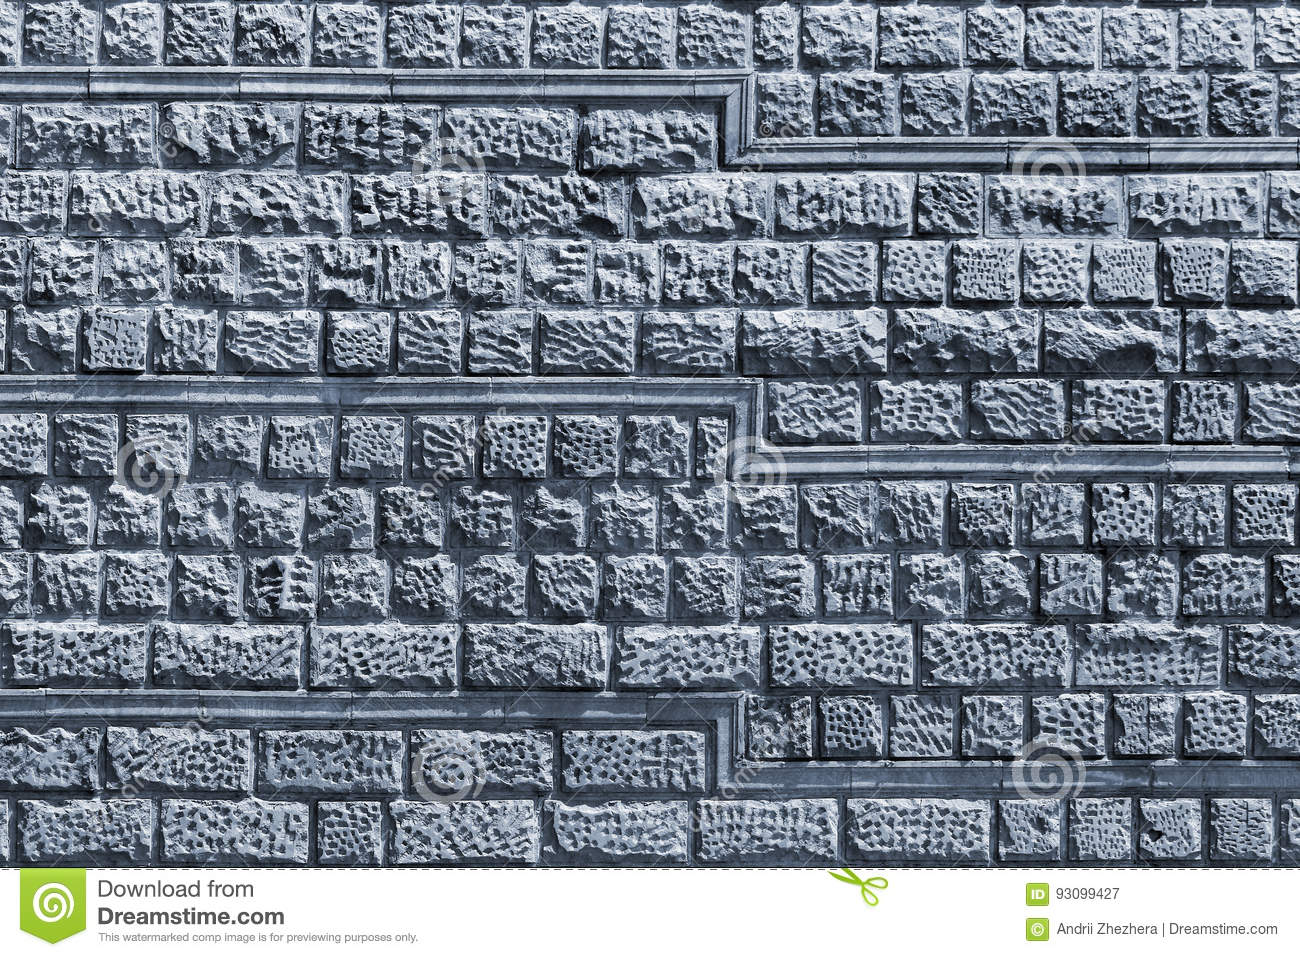 Decorative Stone Tiles In A Wall. Stock Image - Image of break ...